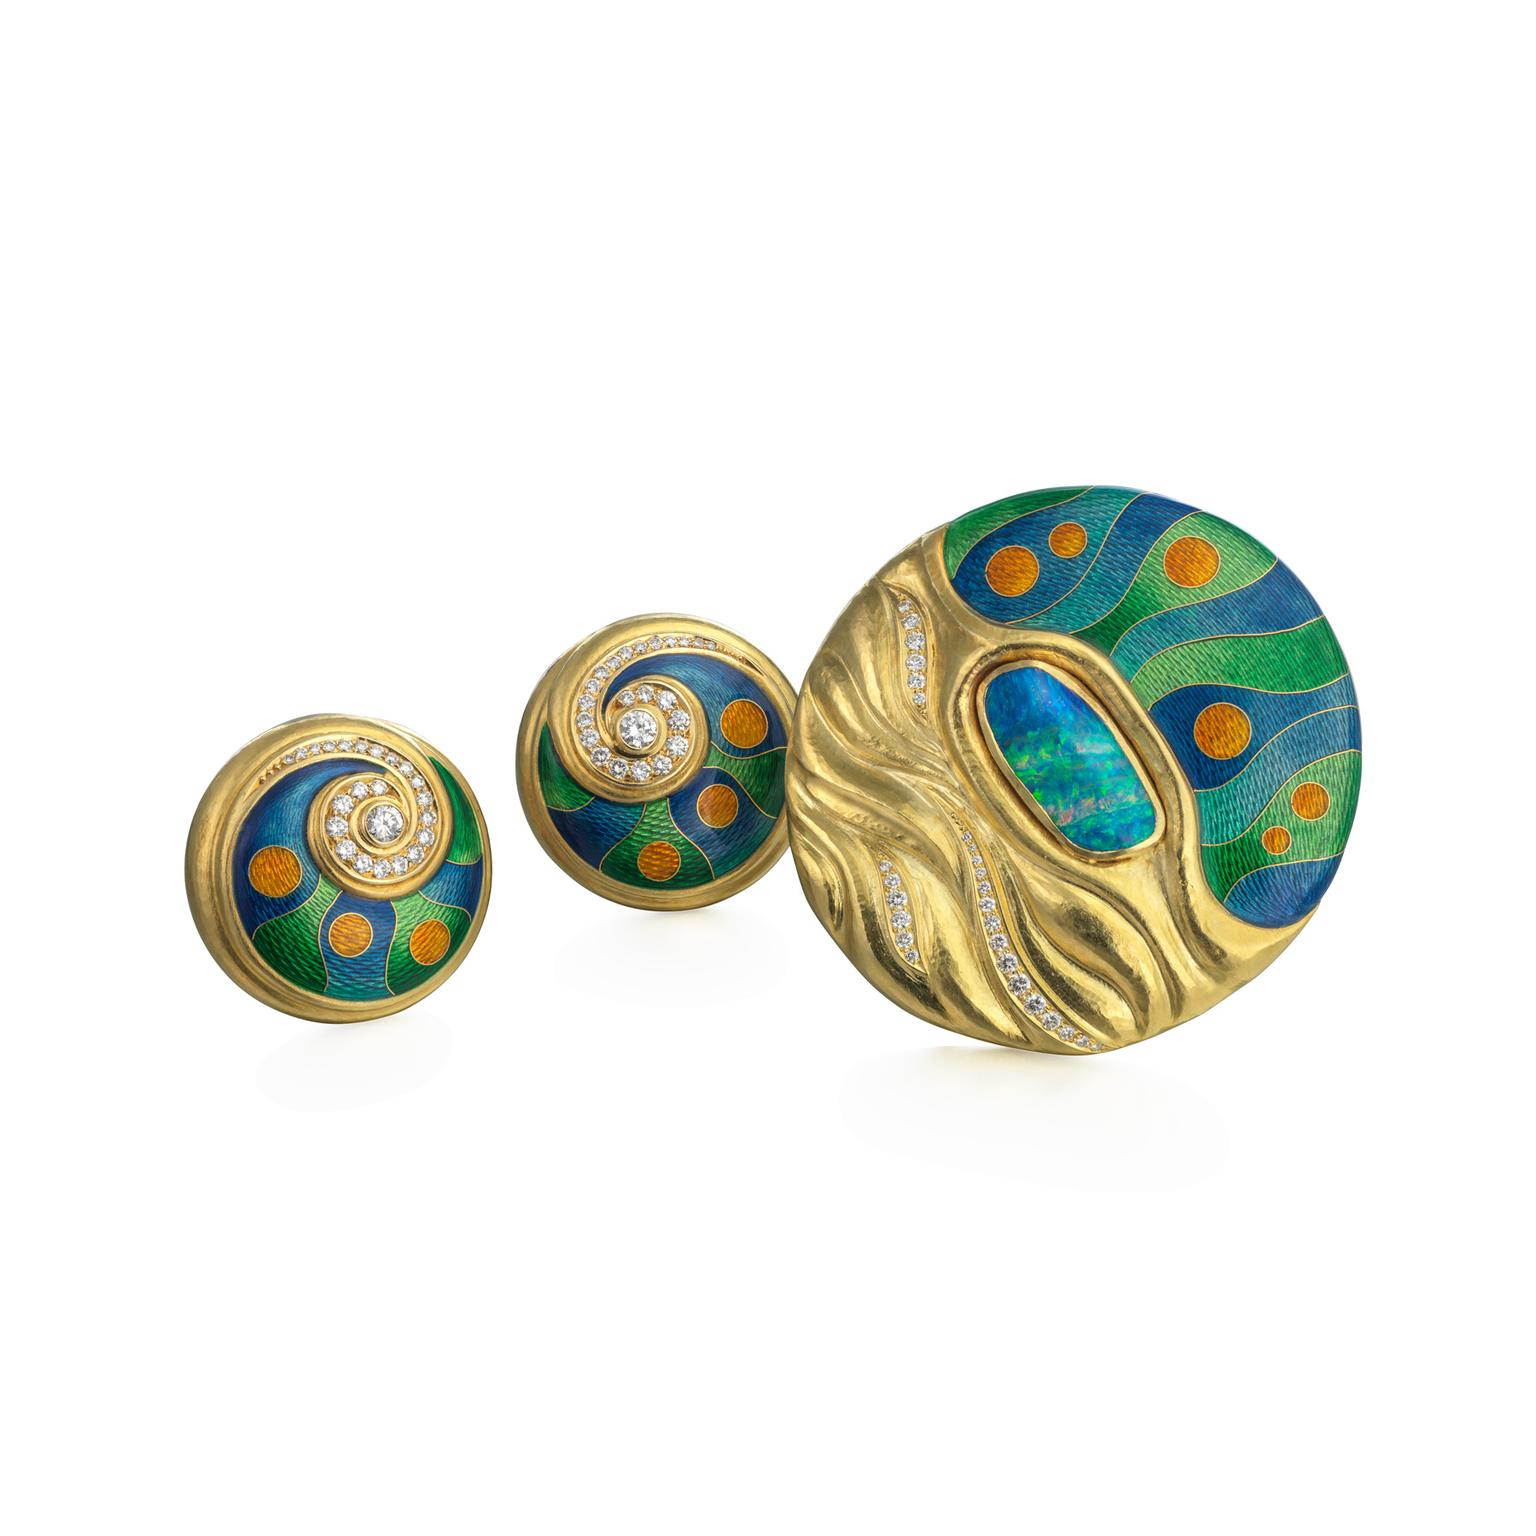 De Vroomen enamel brooch and earclips